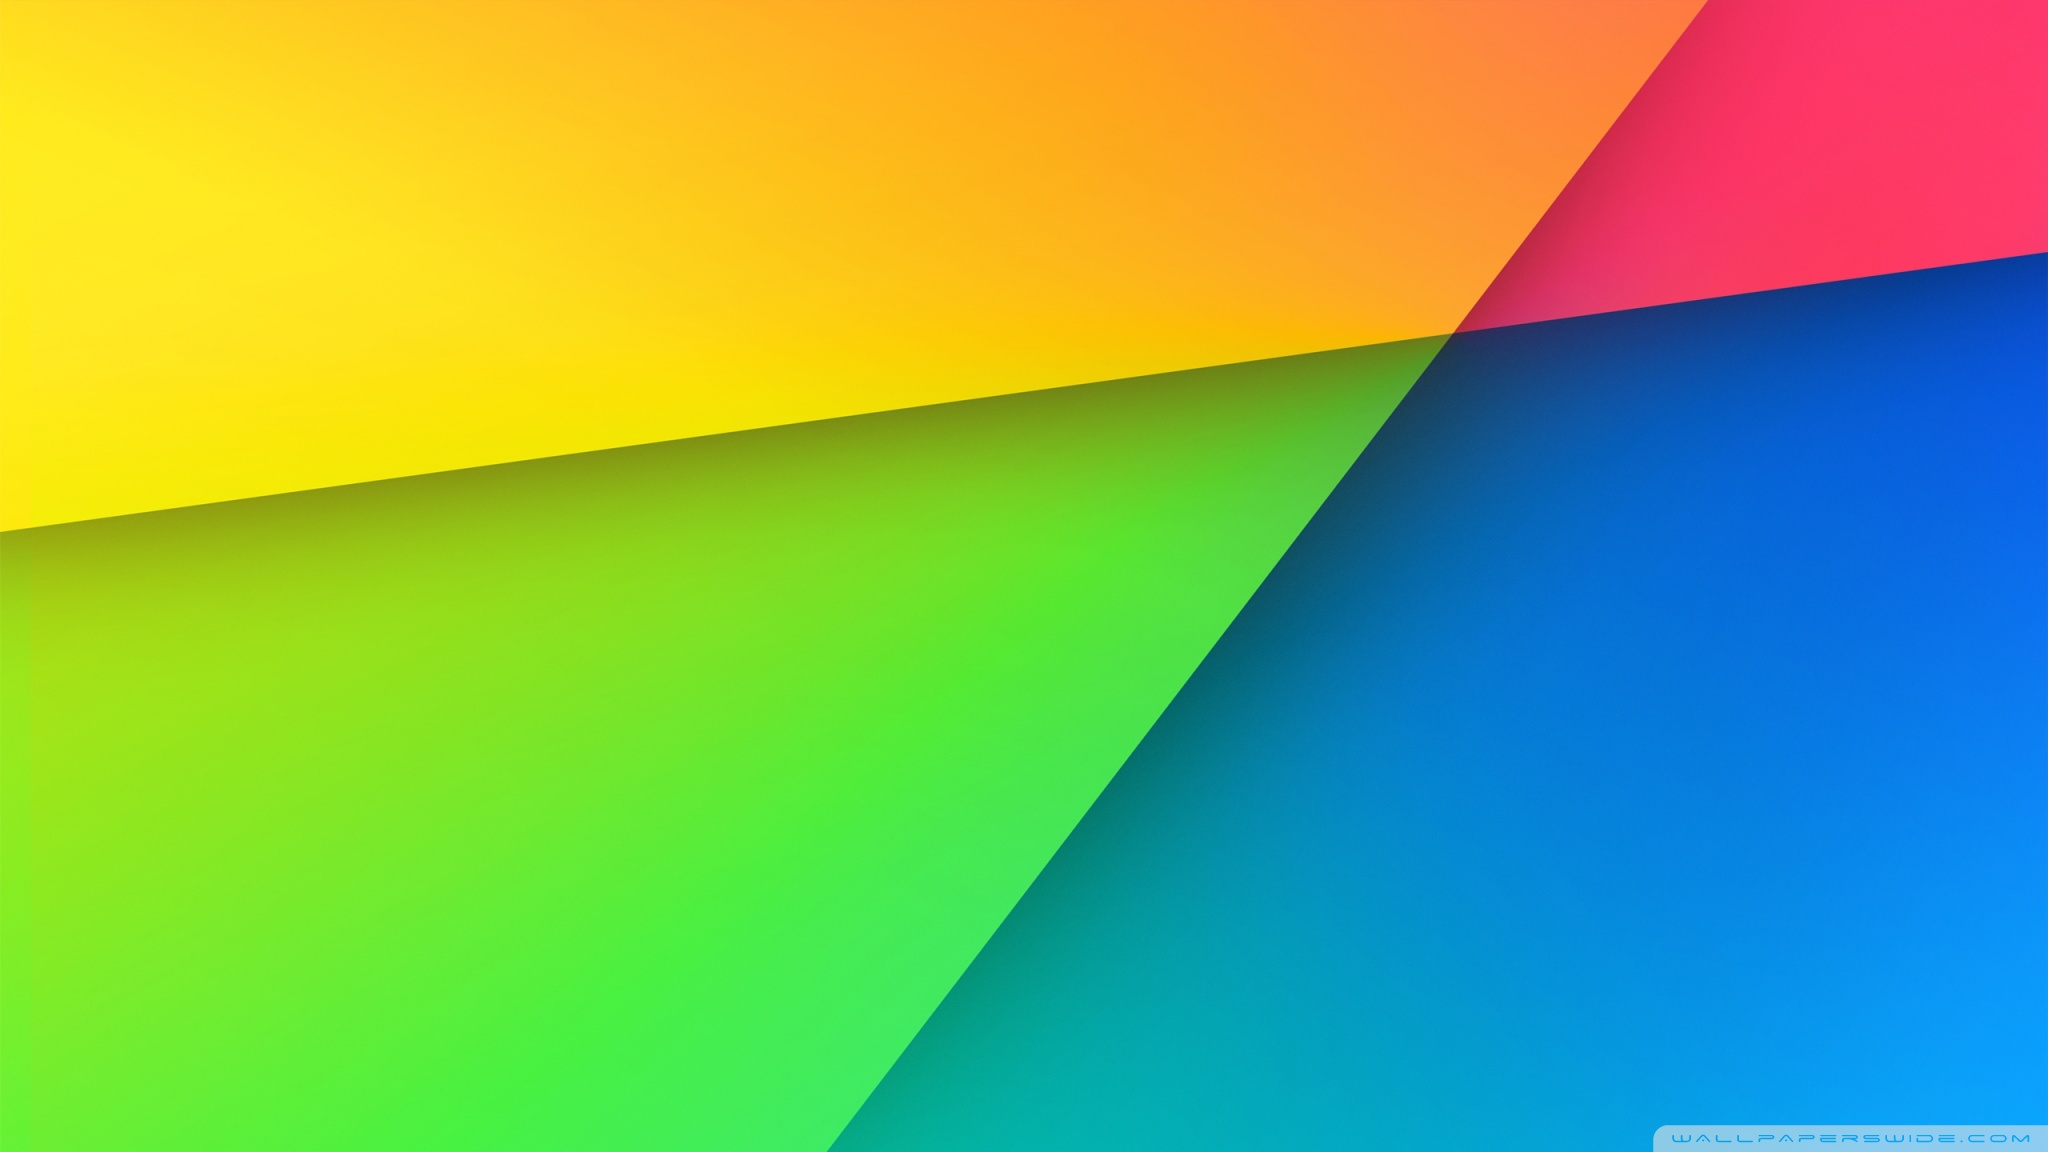 Nexus 7 HD desktop wallpaper : High Definition : Mobile